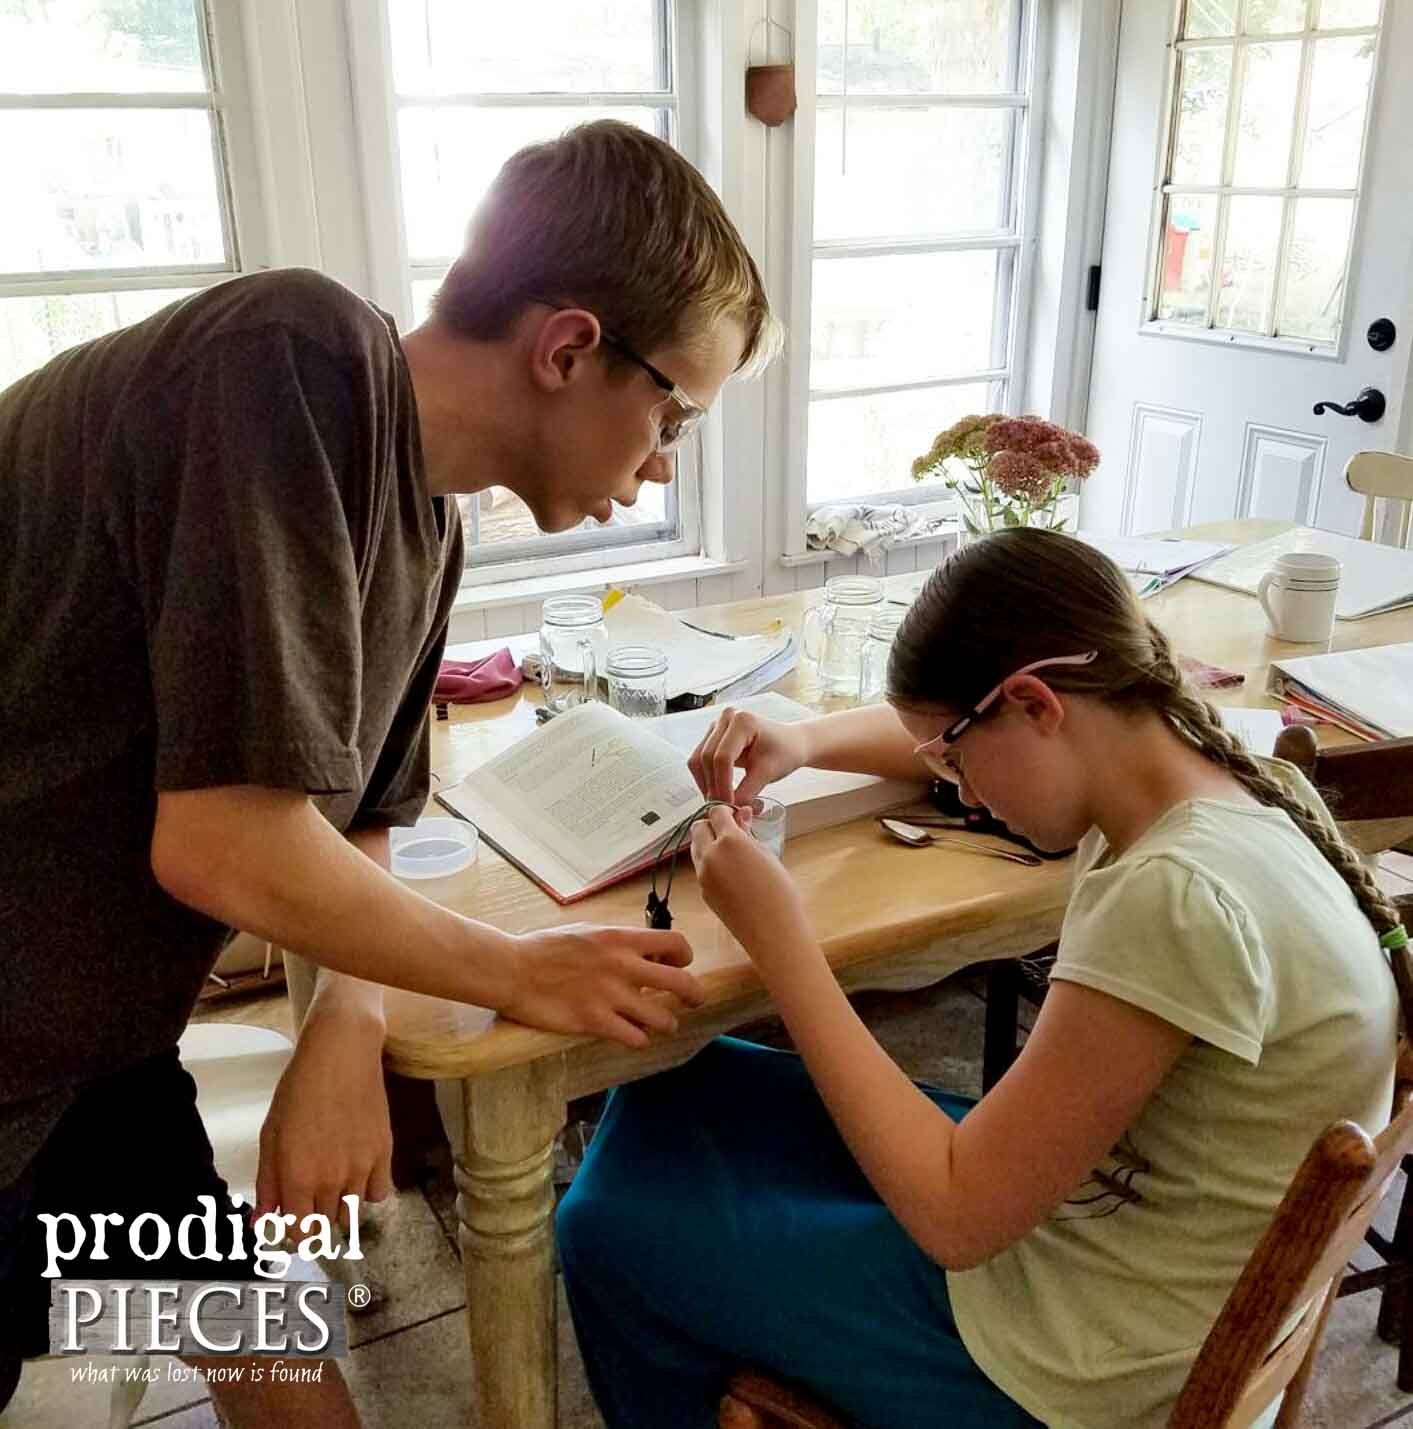 Homeschooling My Teenagers while Running a Business and Blog from Home | Prodigal Pieces | www.prodigalpieces.com